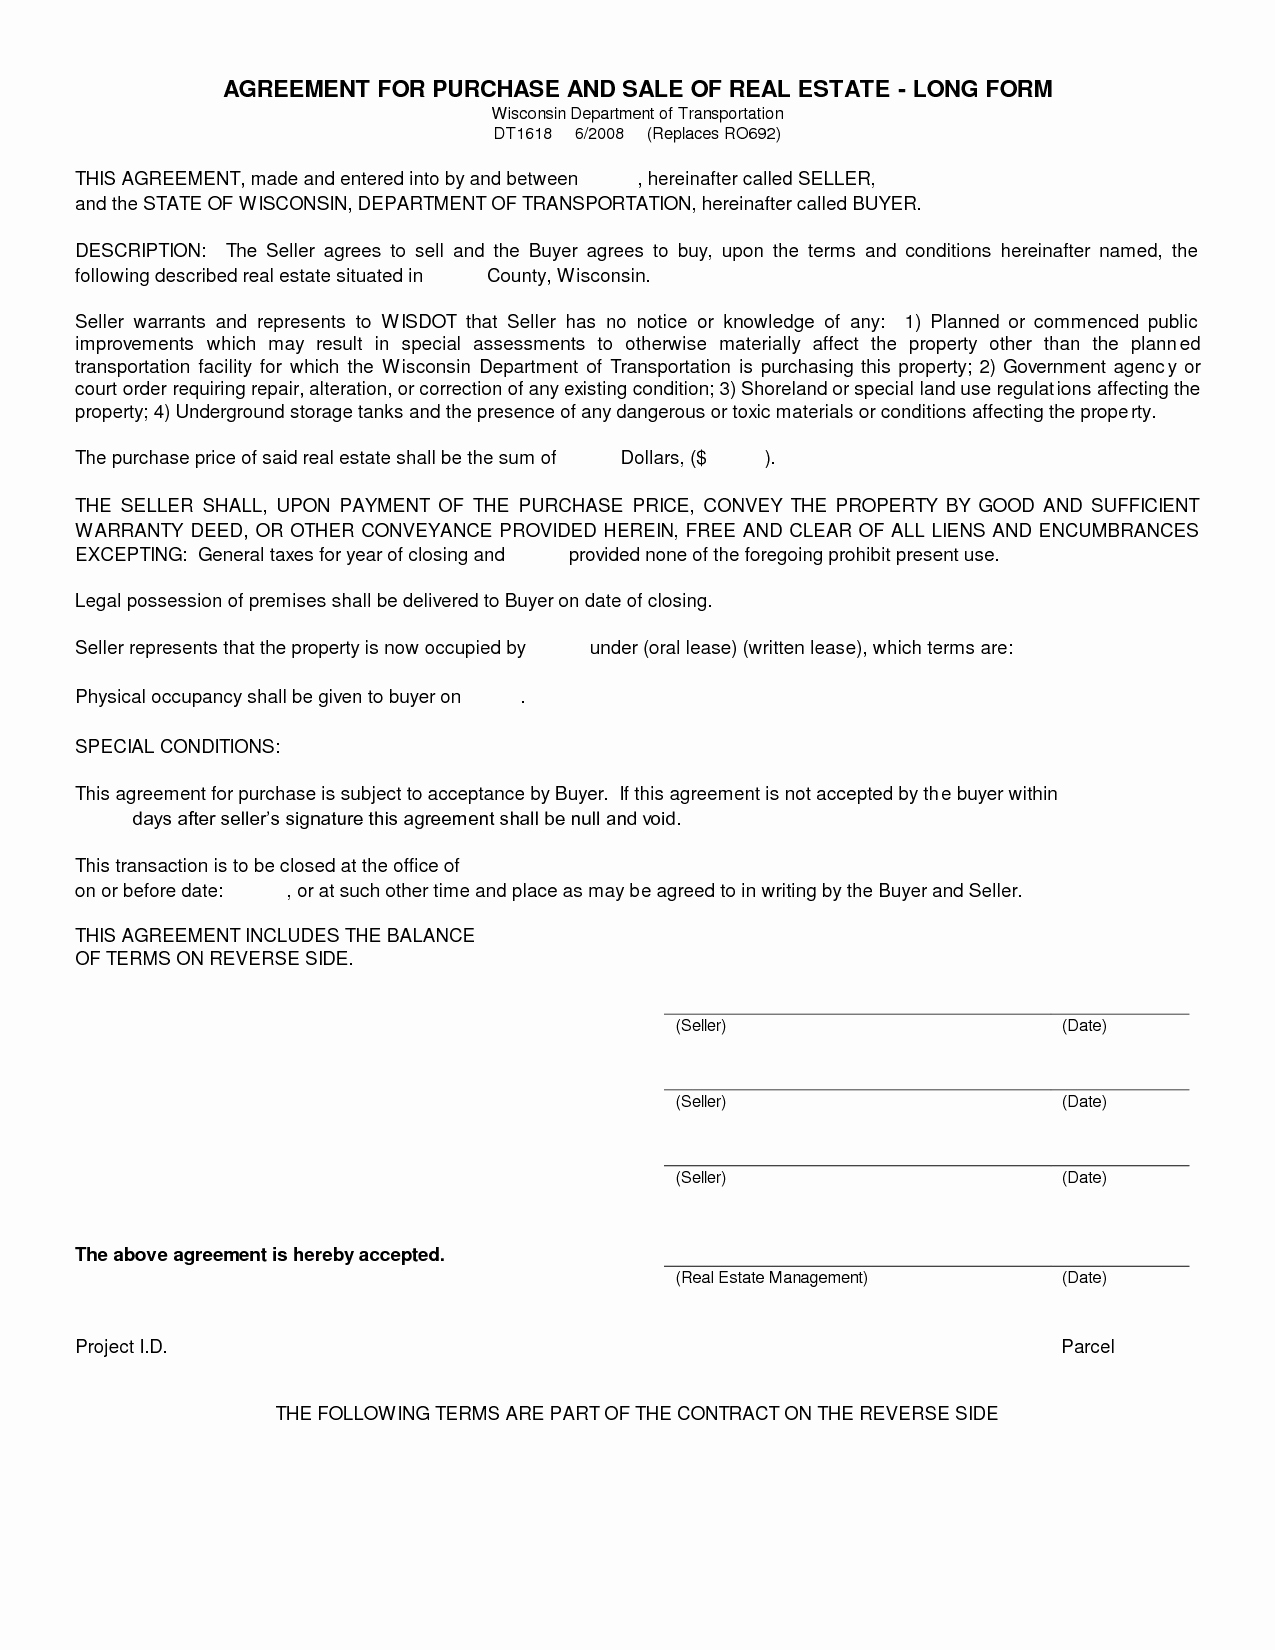 Home Buyout Agreement Template New Free Blank Purchase Agreement form Images Agreement to